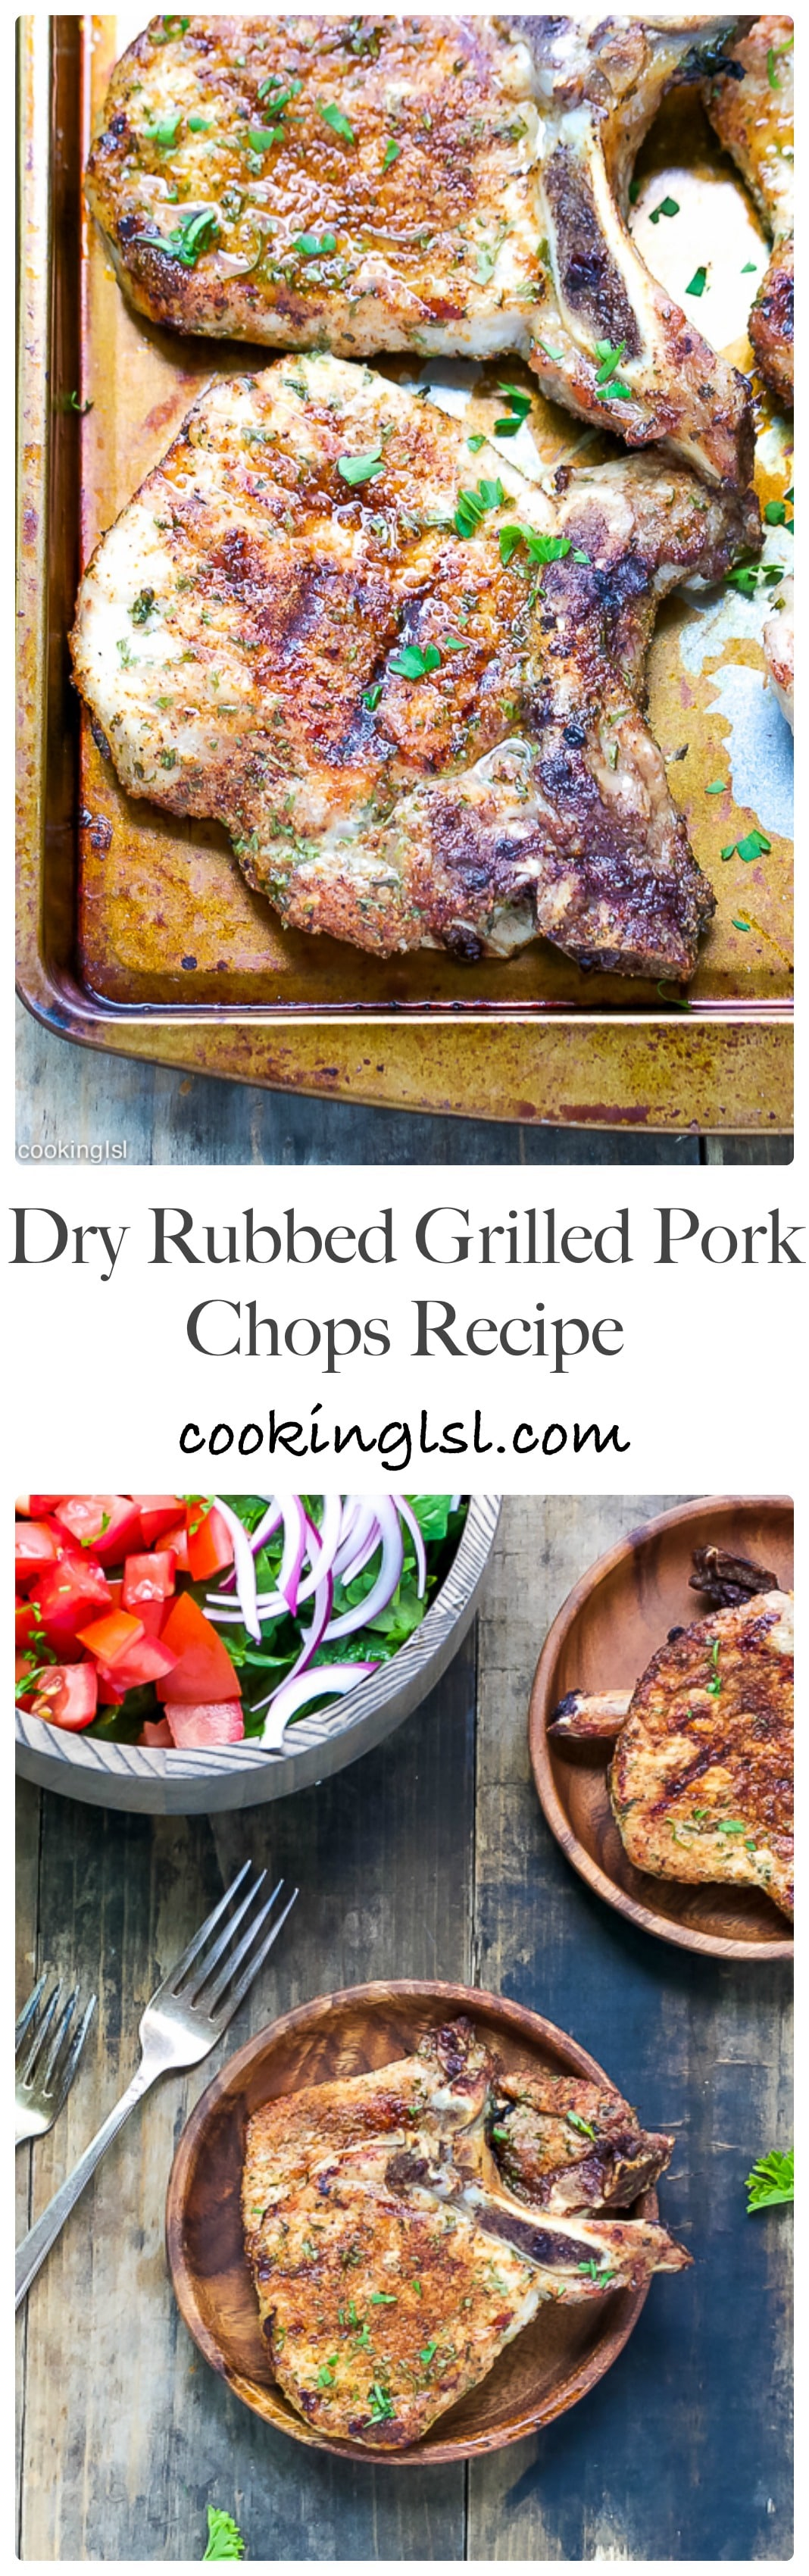 Dry rubbed grilled pork chops recipe cooking lsl juicy flavorful and delicious these dry rubbed grilled pork chops are perfect for a ccuart Choice Image